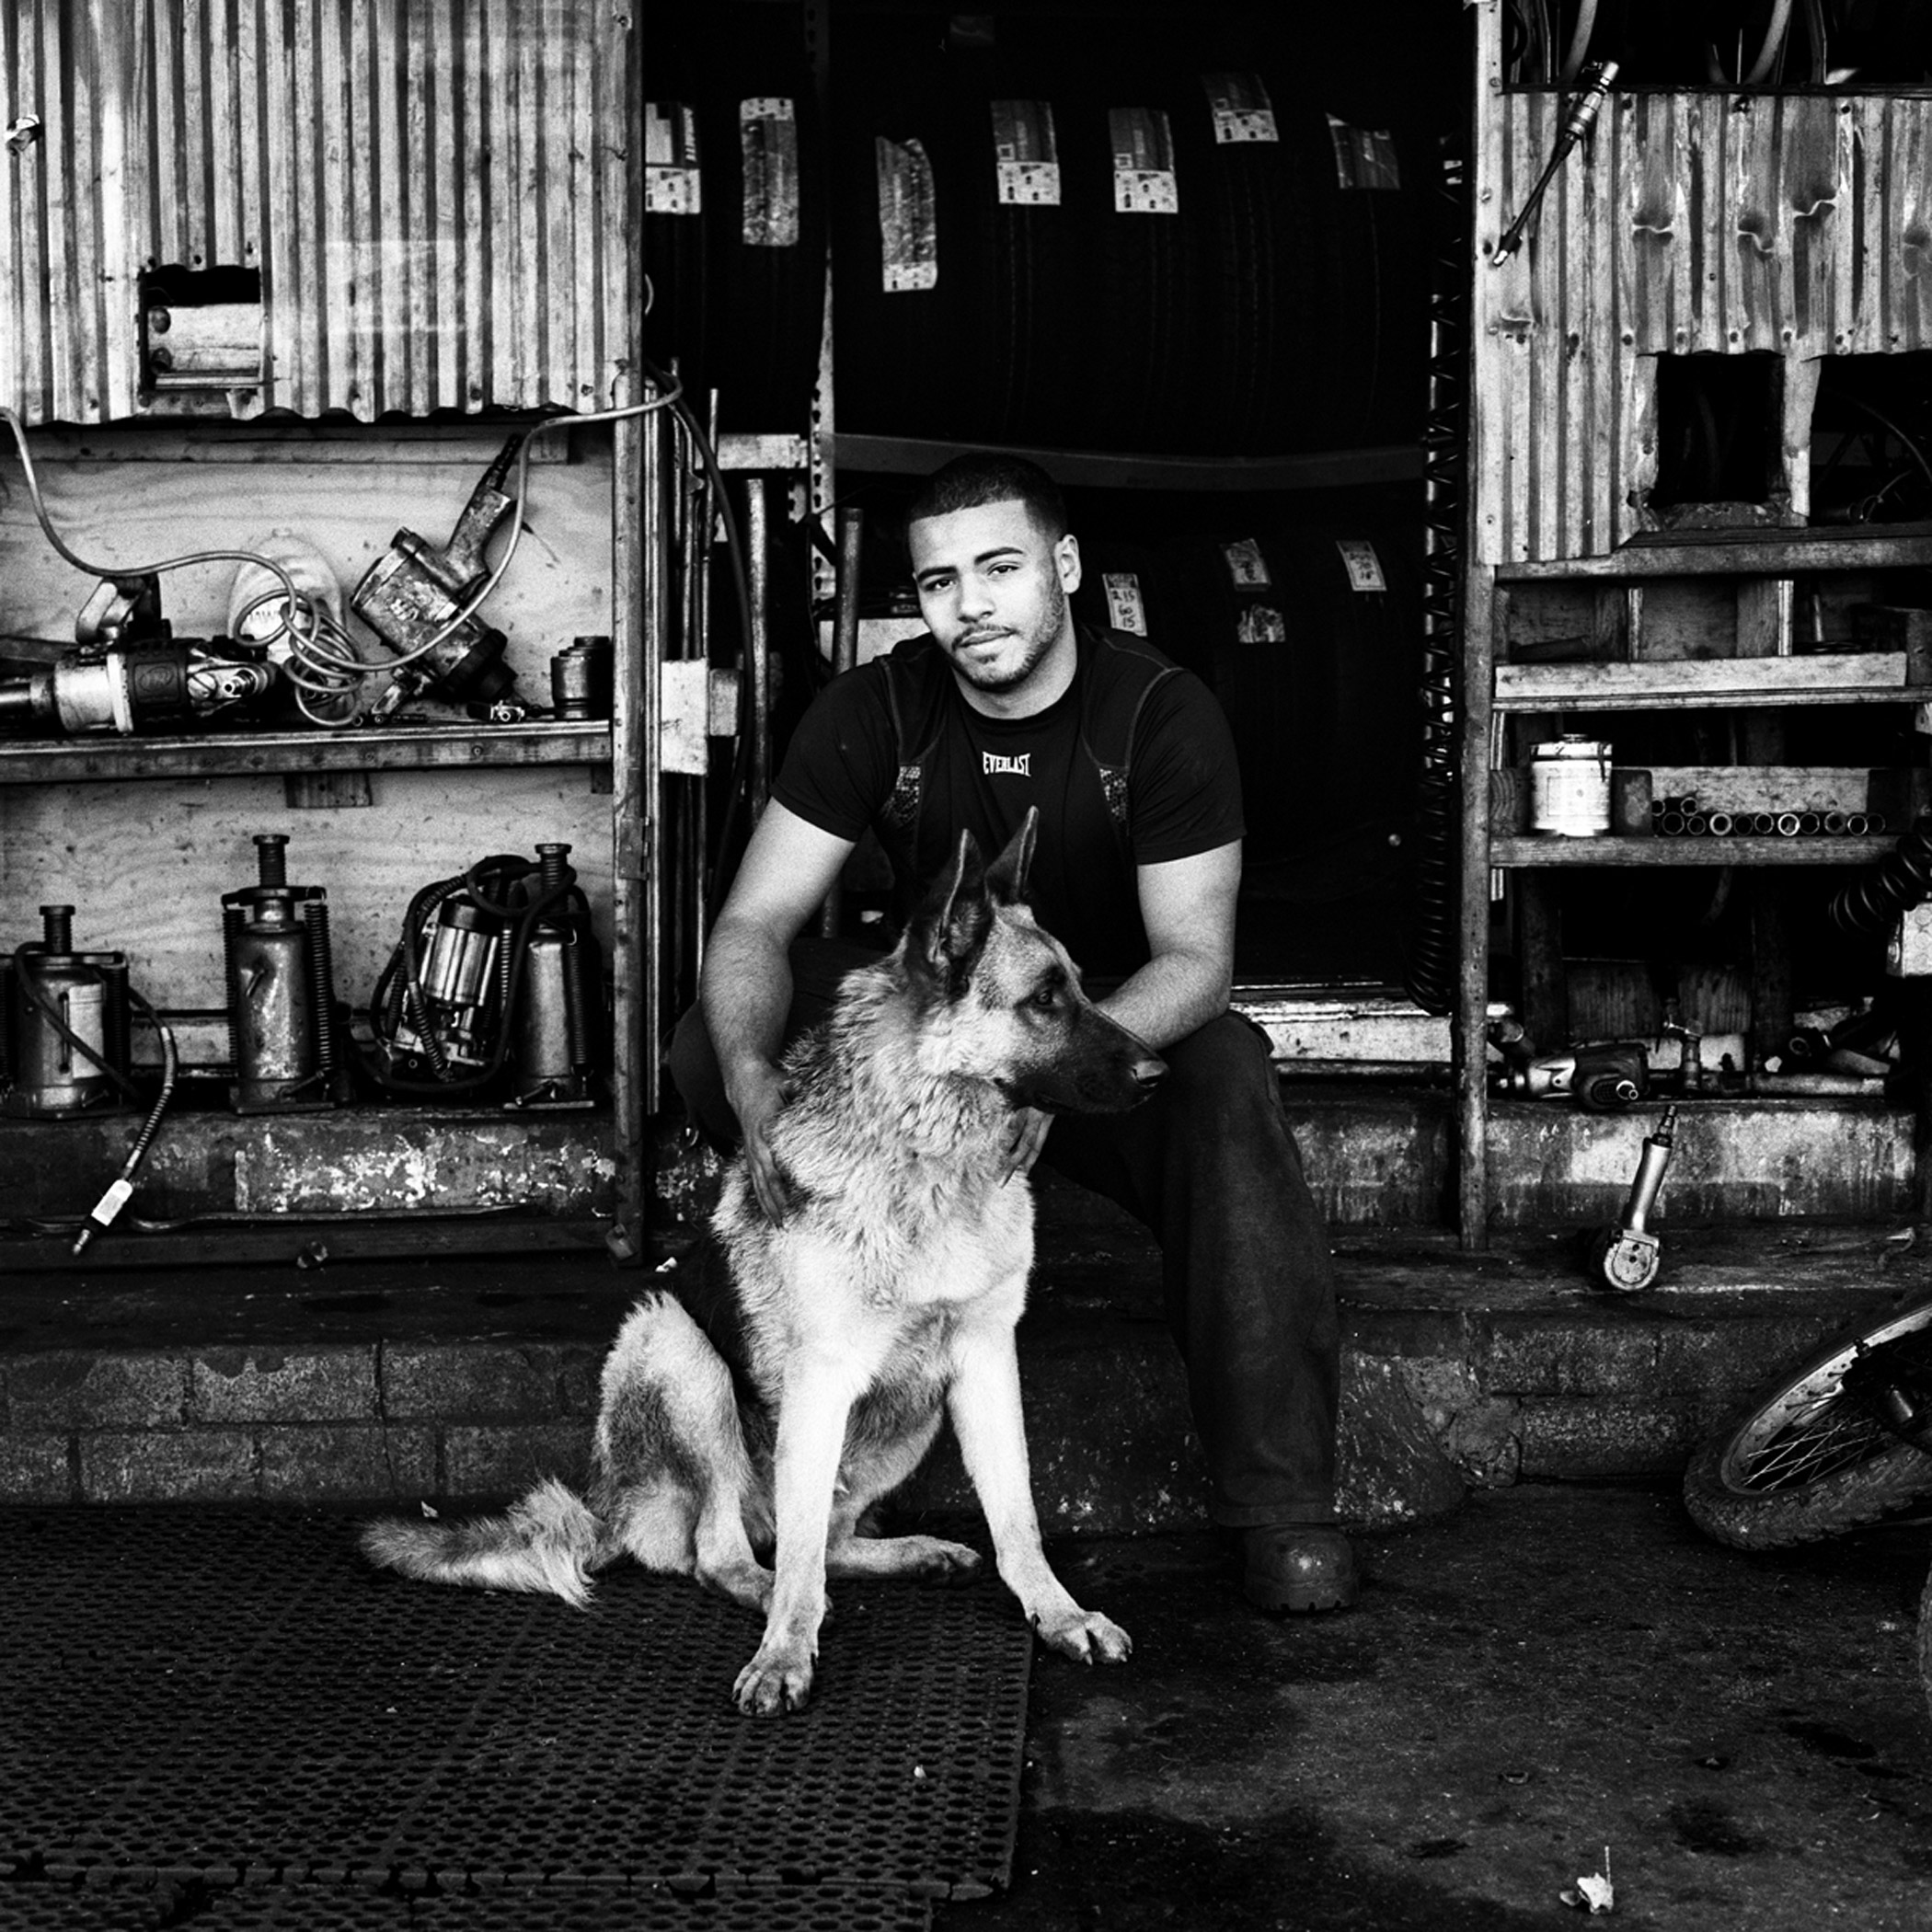 Anthony and his dog Riley at the entrance to their tire shop, P&J Tire Shop, on Metropolitan Avenue in Bushwick, Brooklyn, N.Y., November 2015.